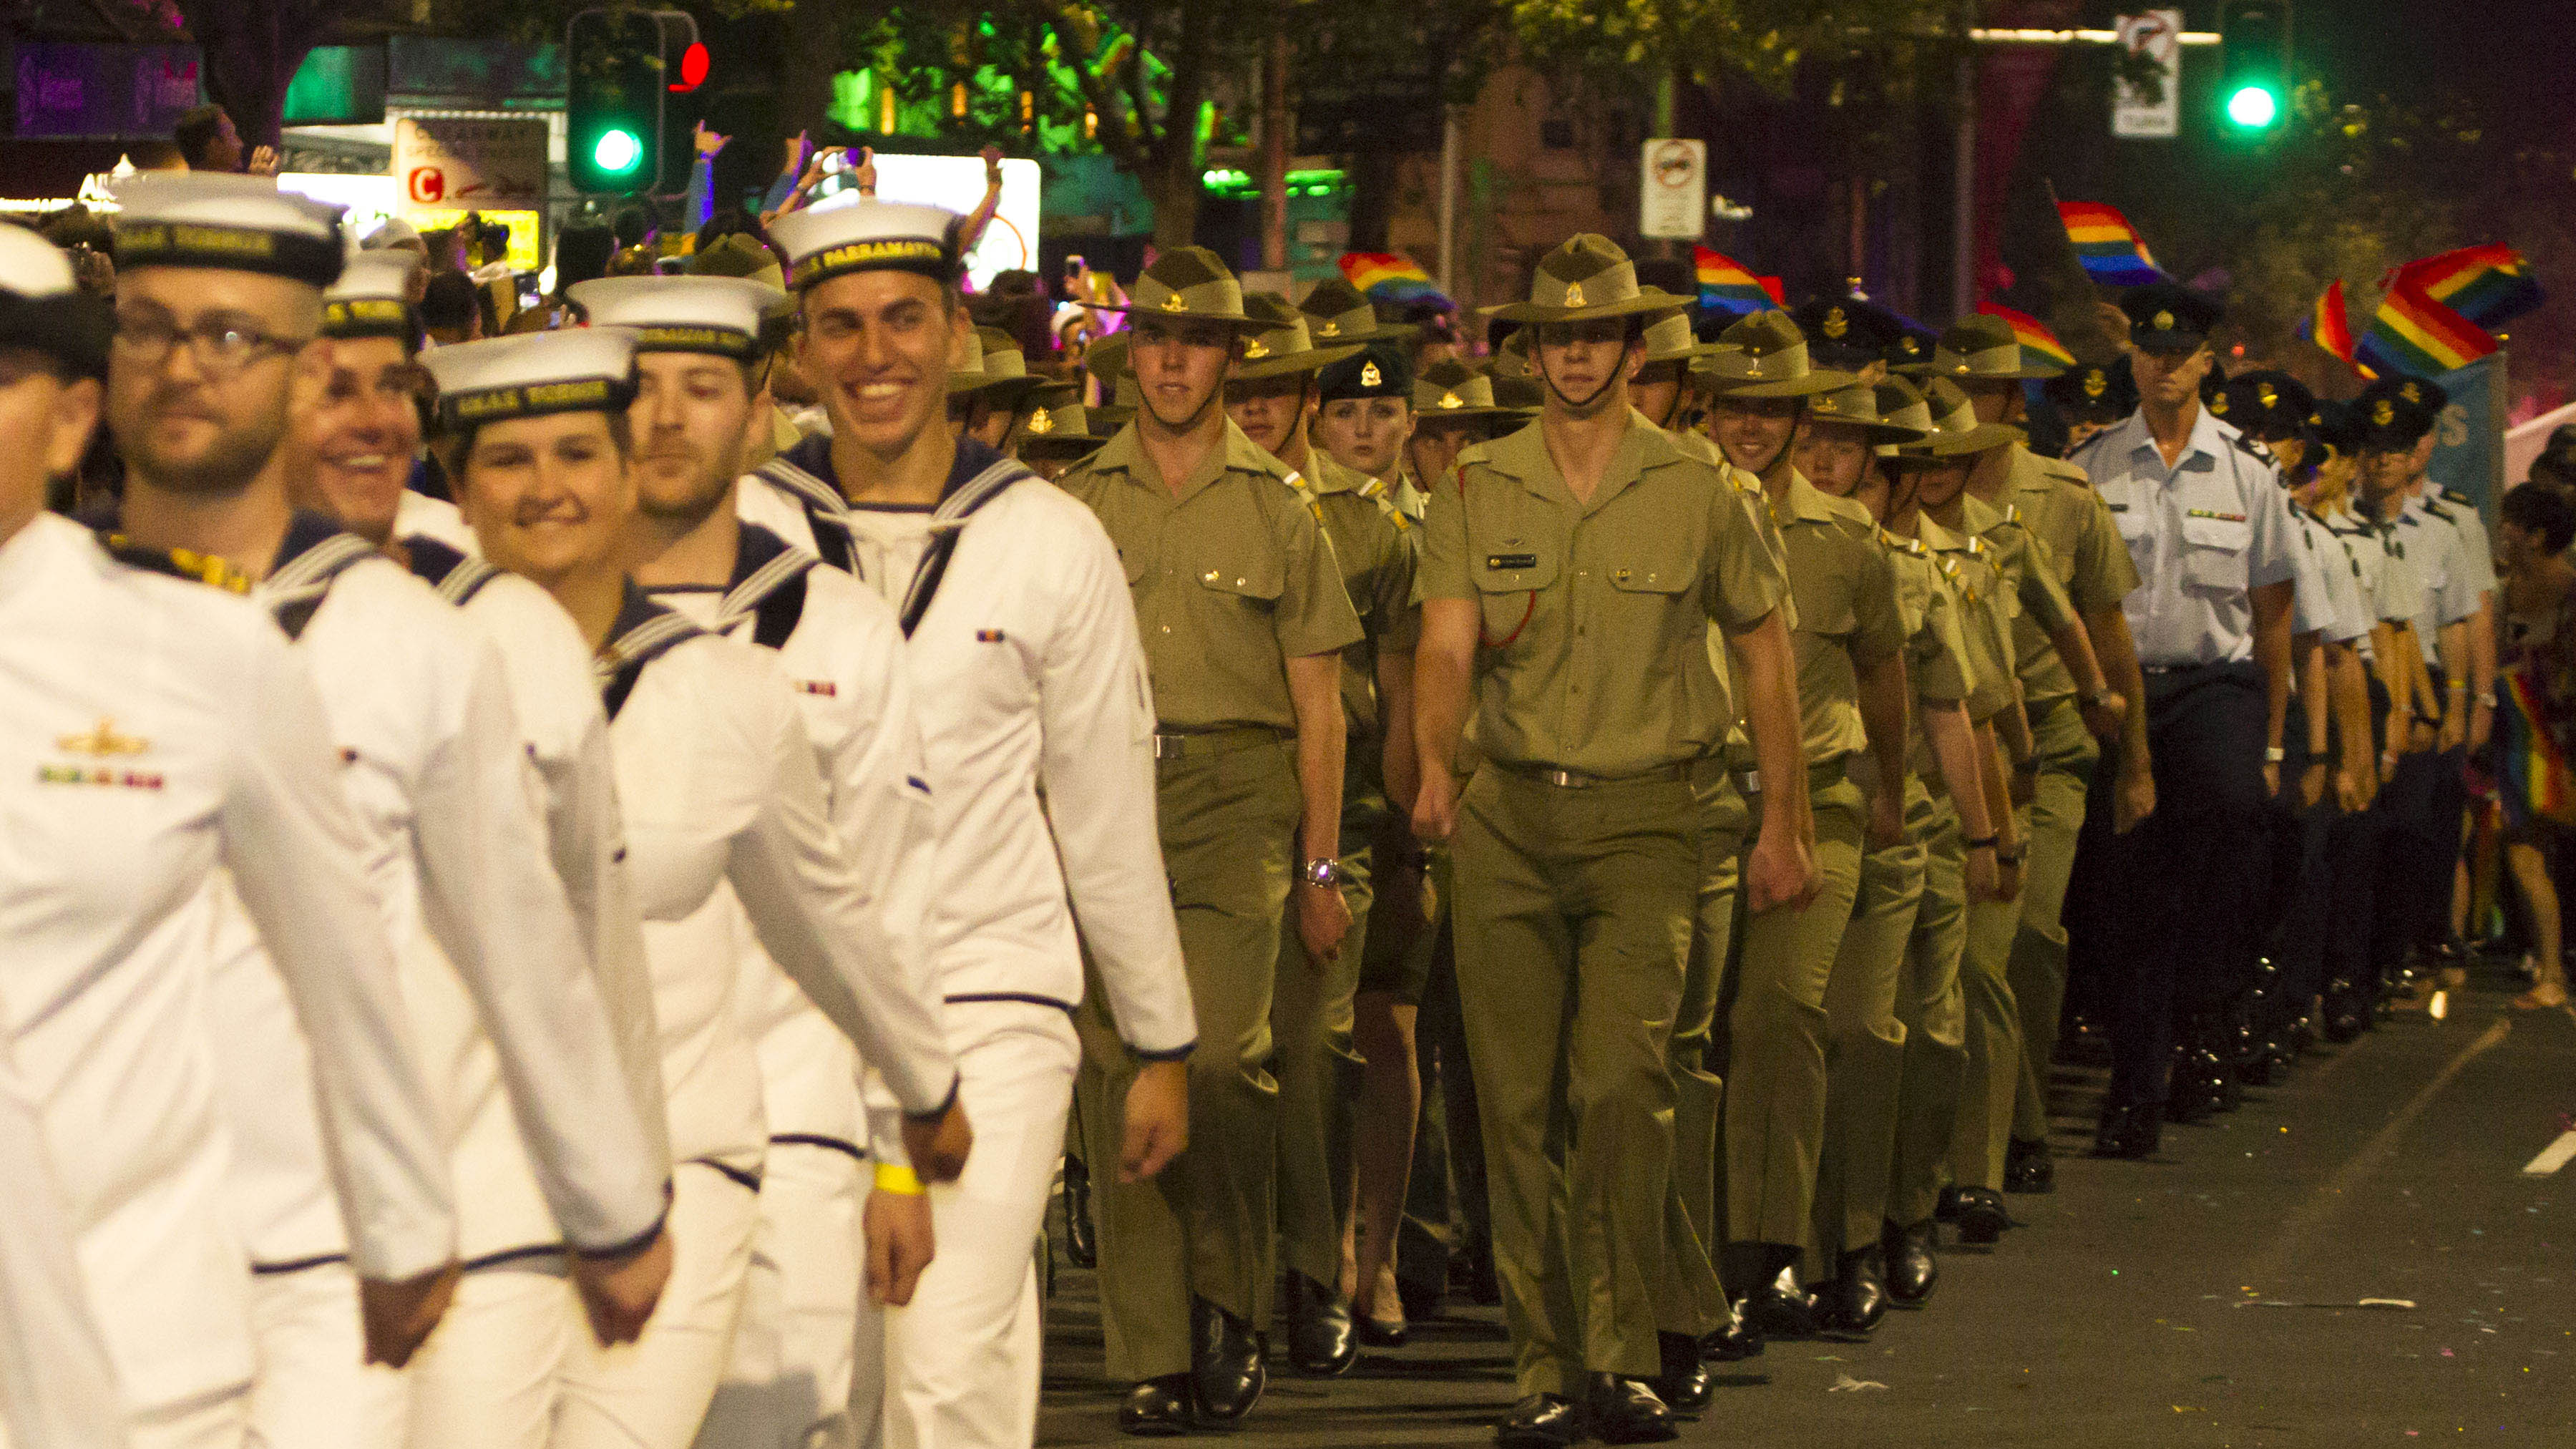 Australian Defence Force members and supporters march in the 2015 Sydney Gay and Lesbian Mardi Gras parade.